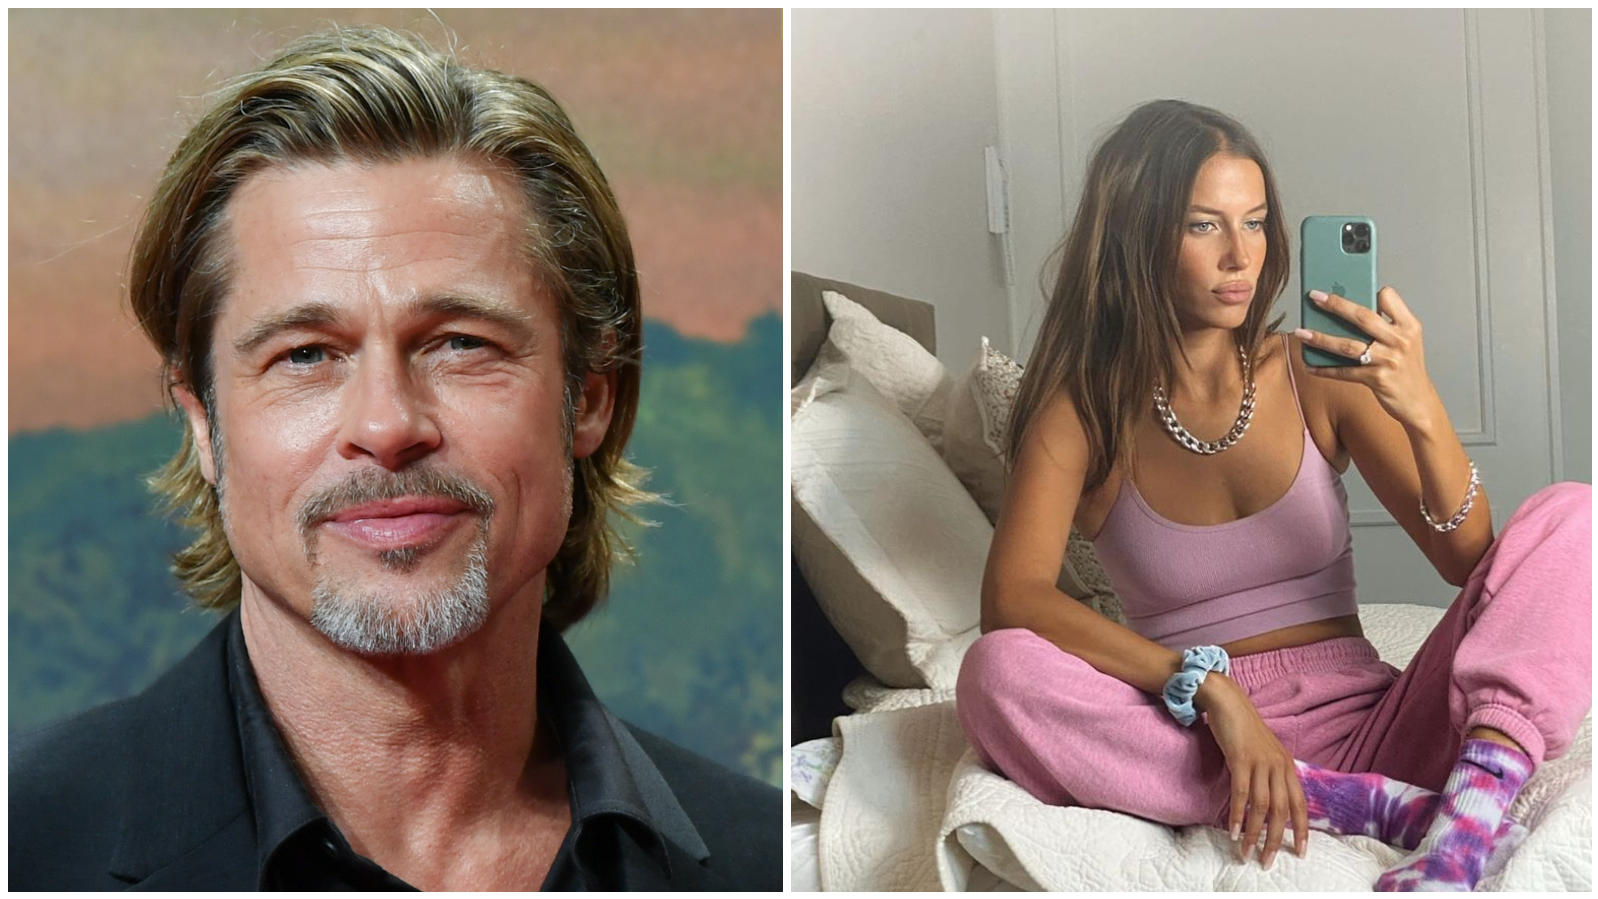 Brad Pitt and Nicole Poturalski faking the Relationship for Brand Values